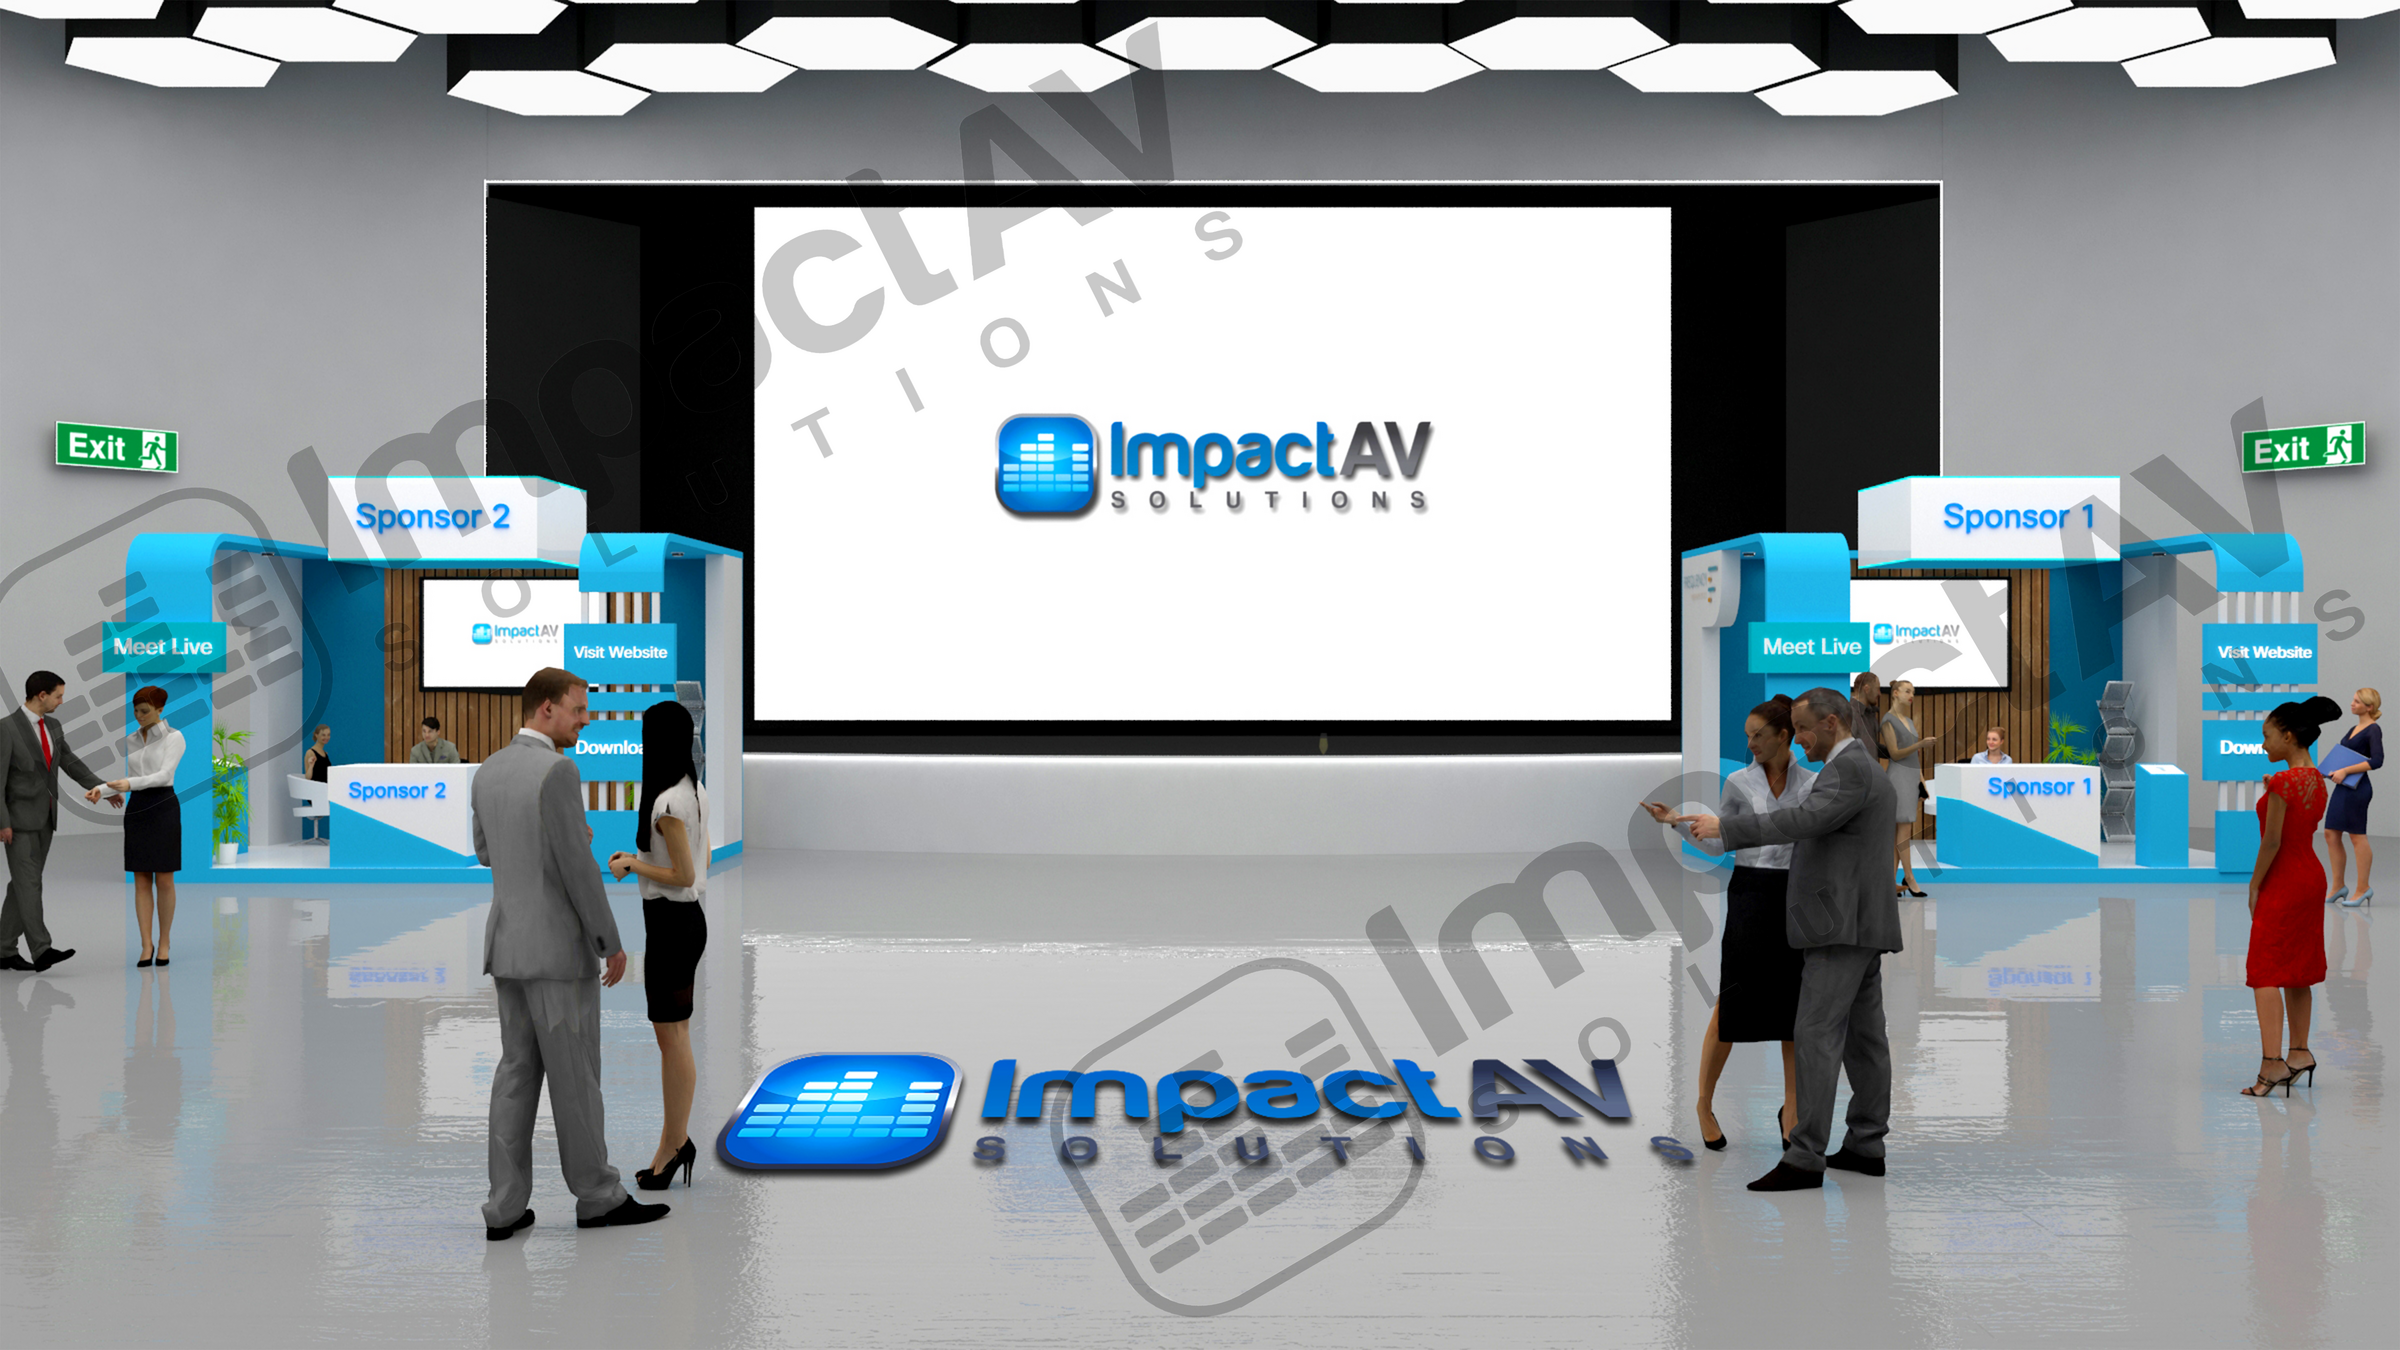 Impact AV Exhibition Hall